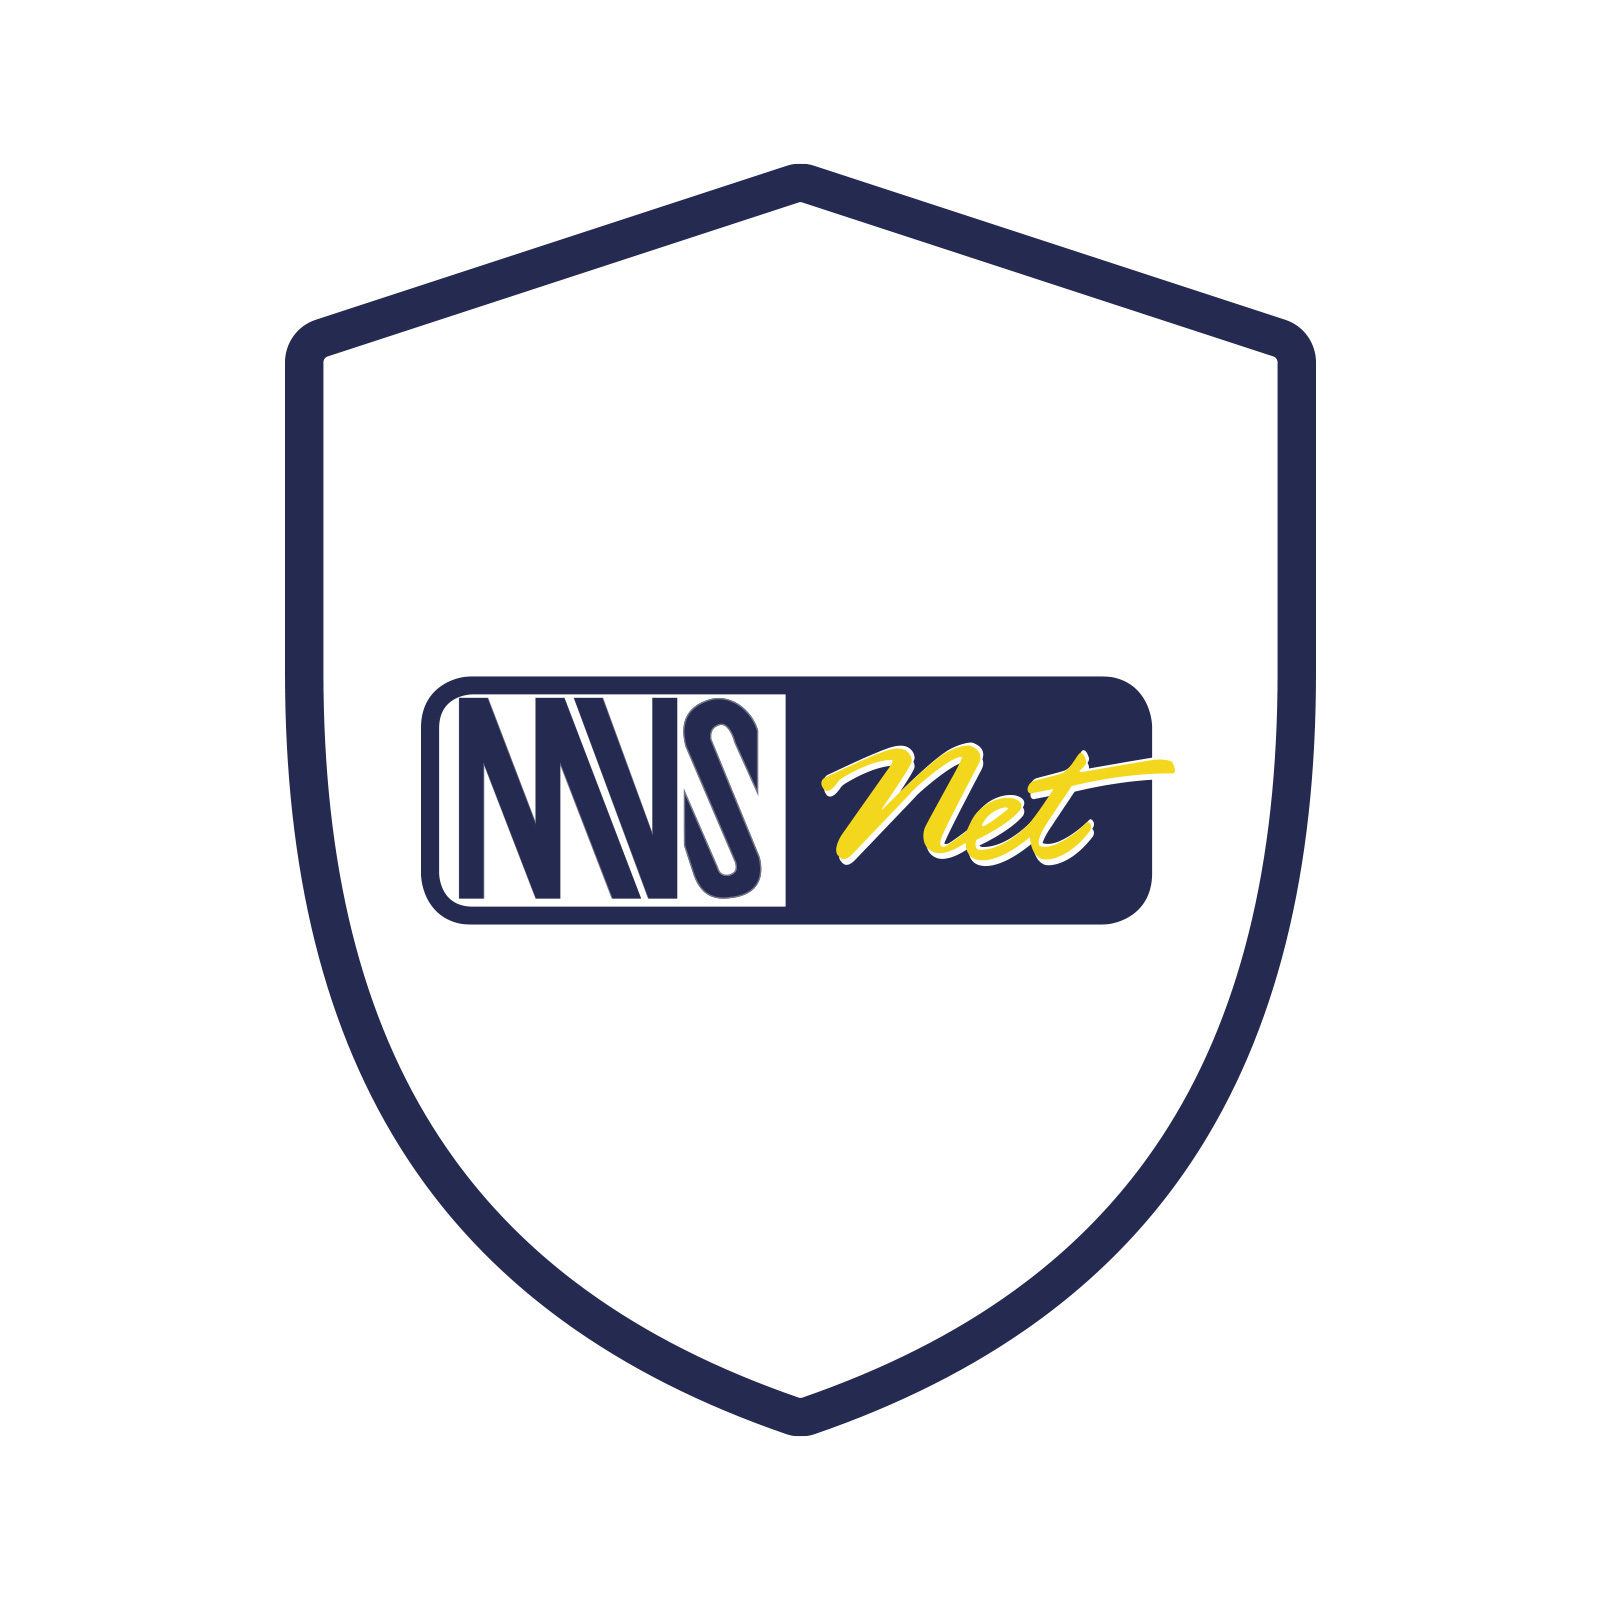 MvsNET Advanced system for manage alarms